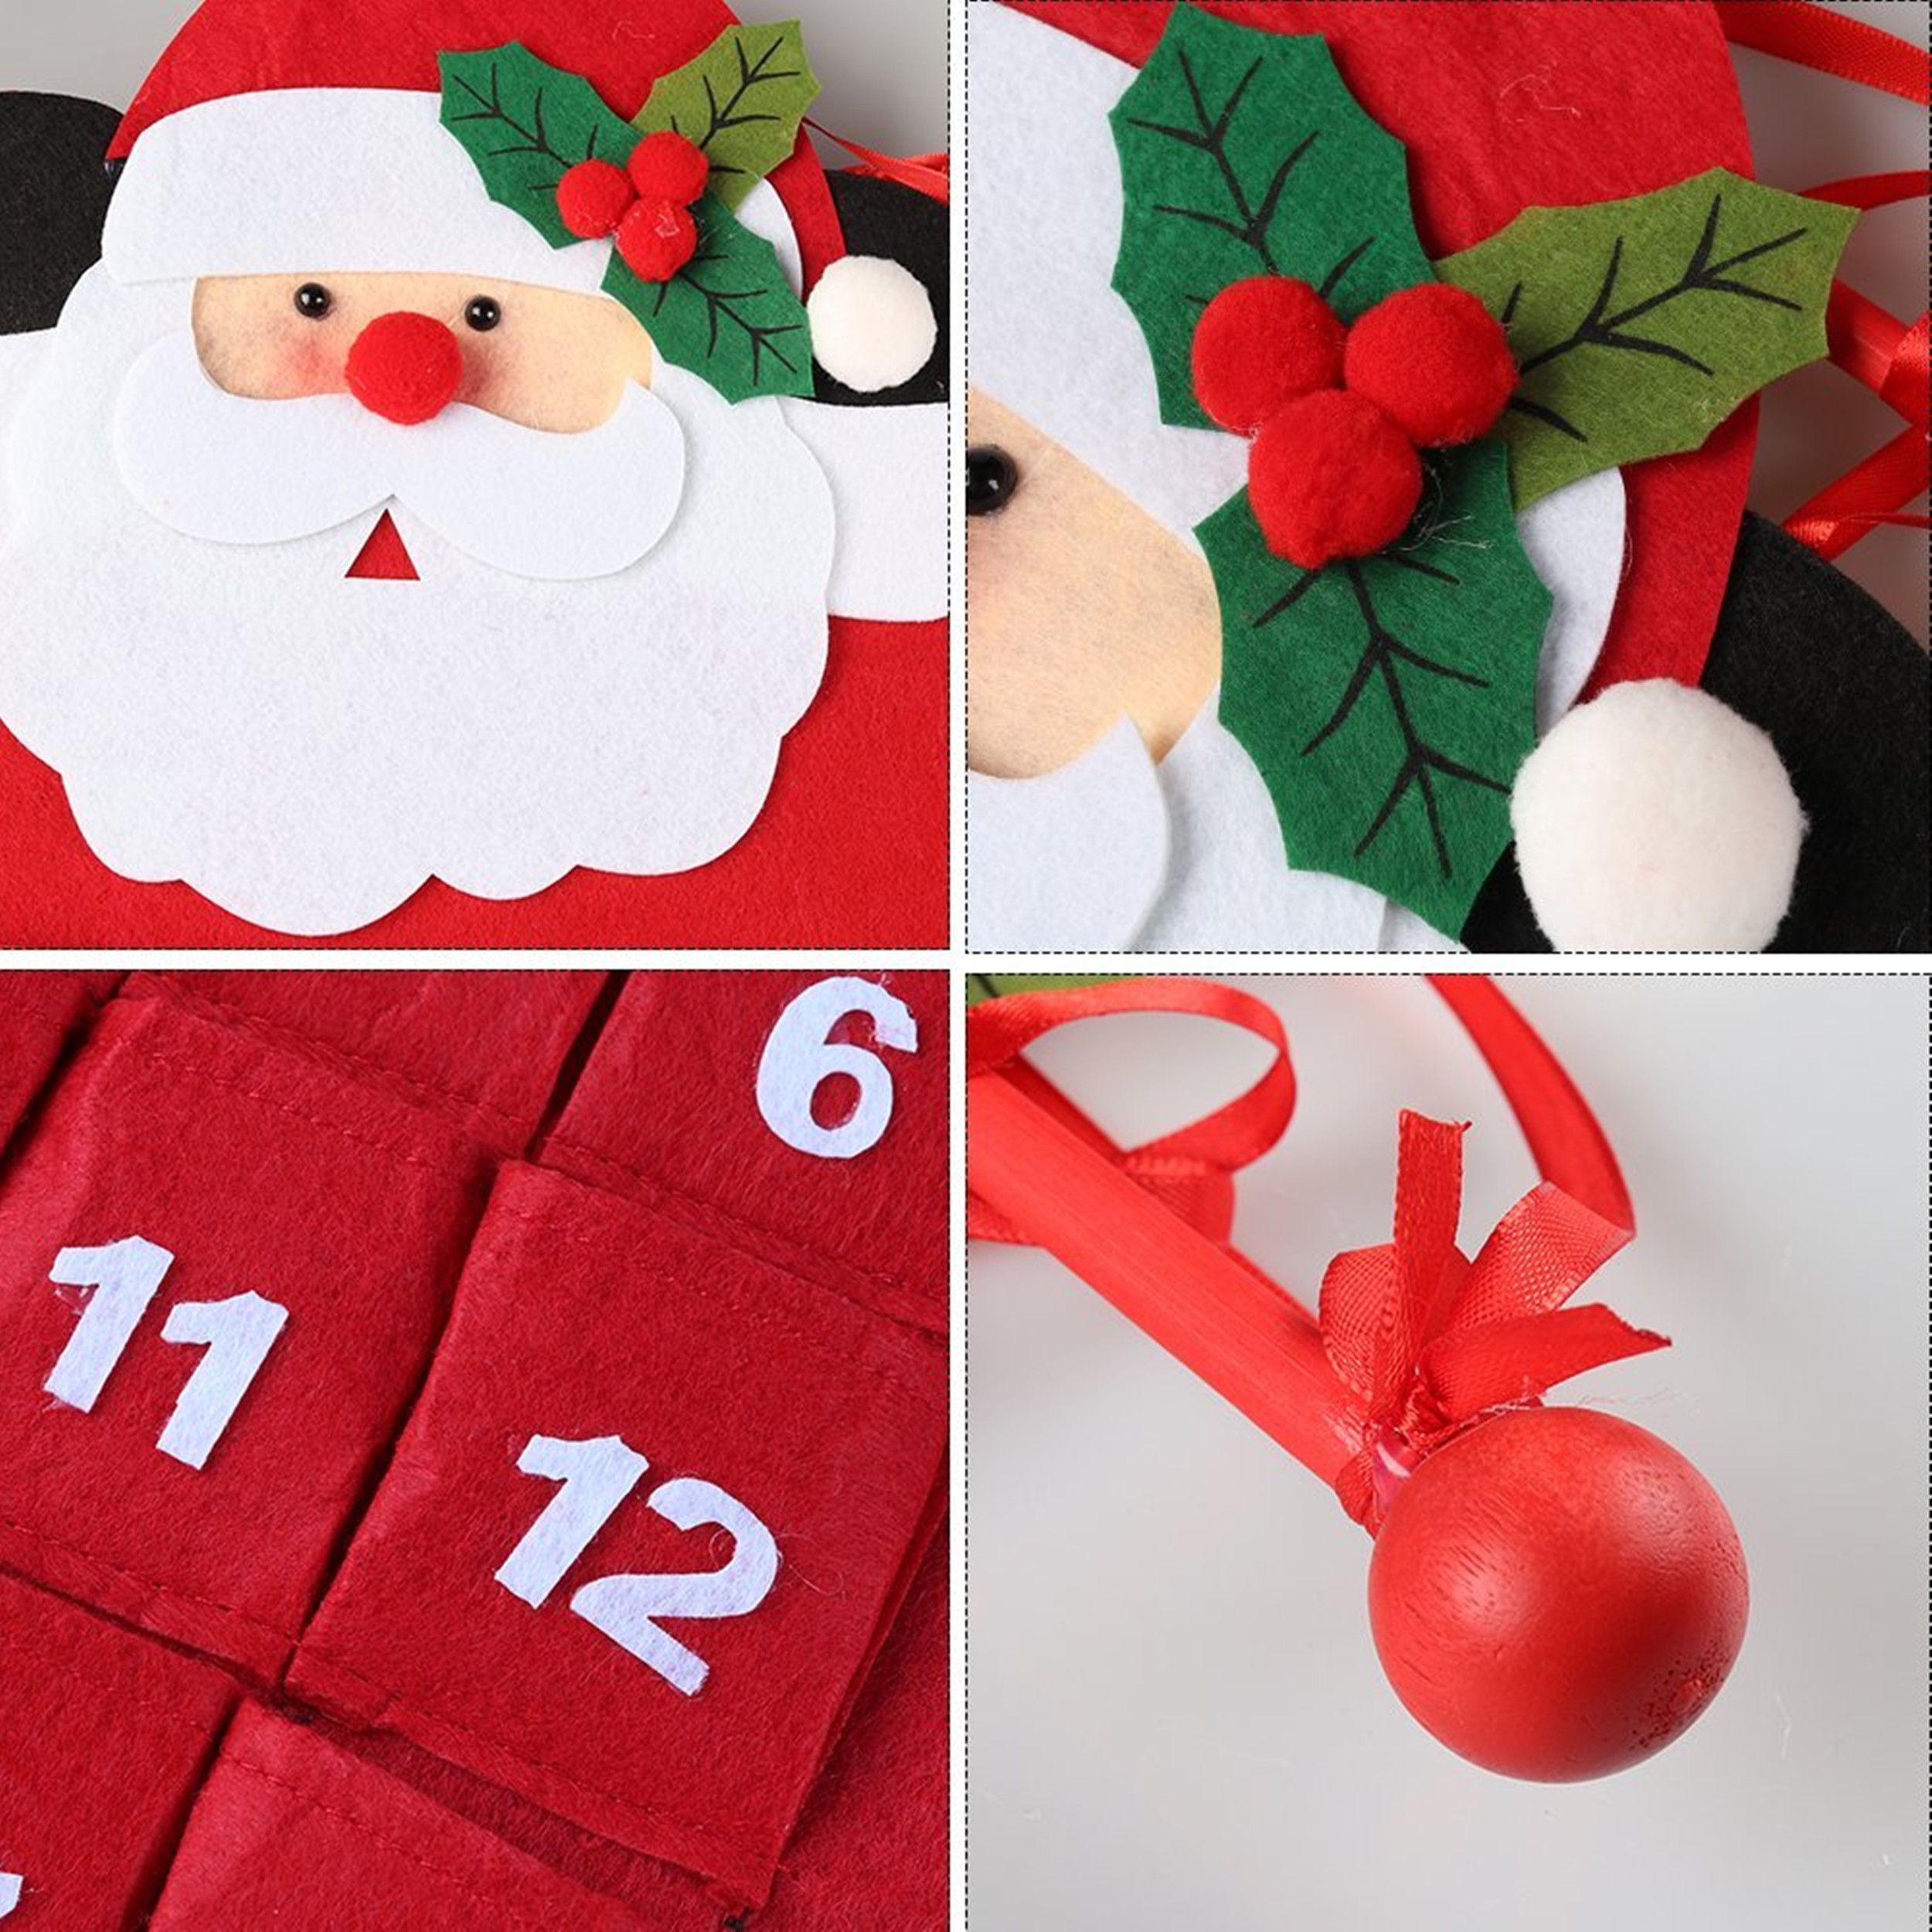 Countdown to Christmas Calendar Indoor Christmas Decorations 3D